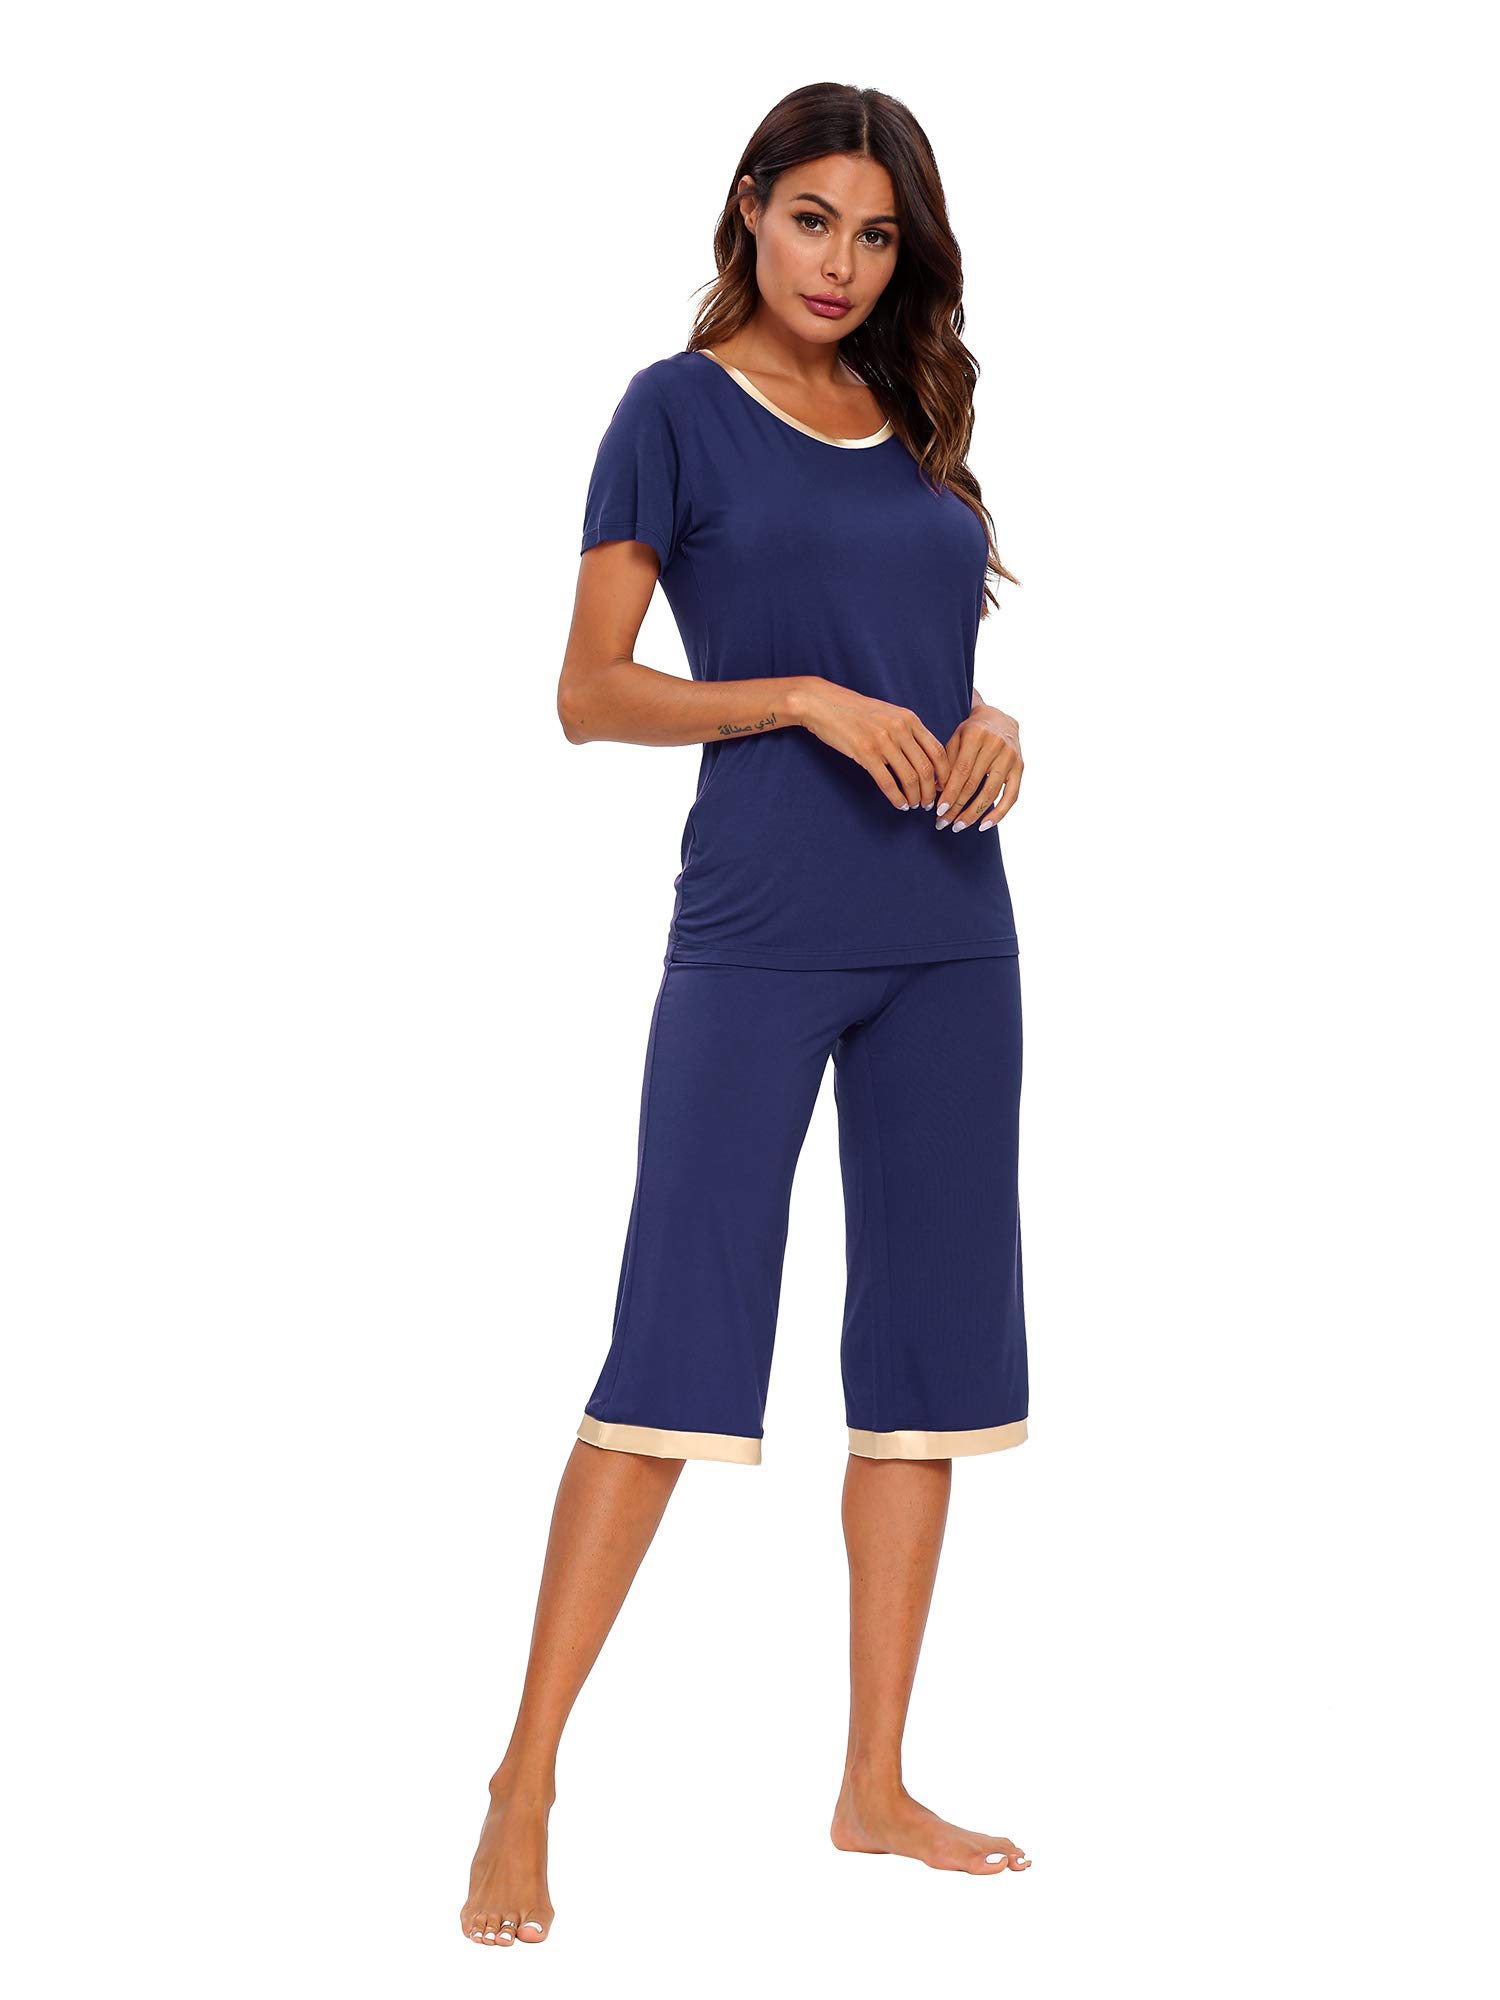 TIKTIK Womens Modal Pajama Set Comfy Sleepwear Top with Capri Pants Pjs Petite Plus Size S-4XL, Black, Small